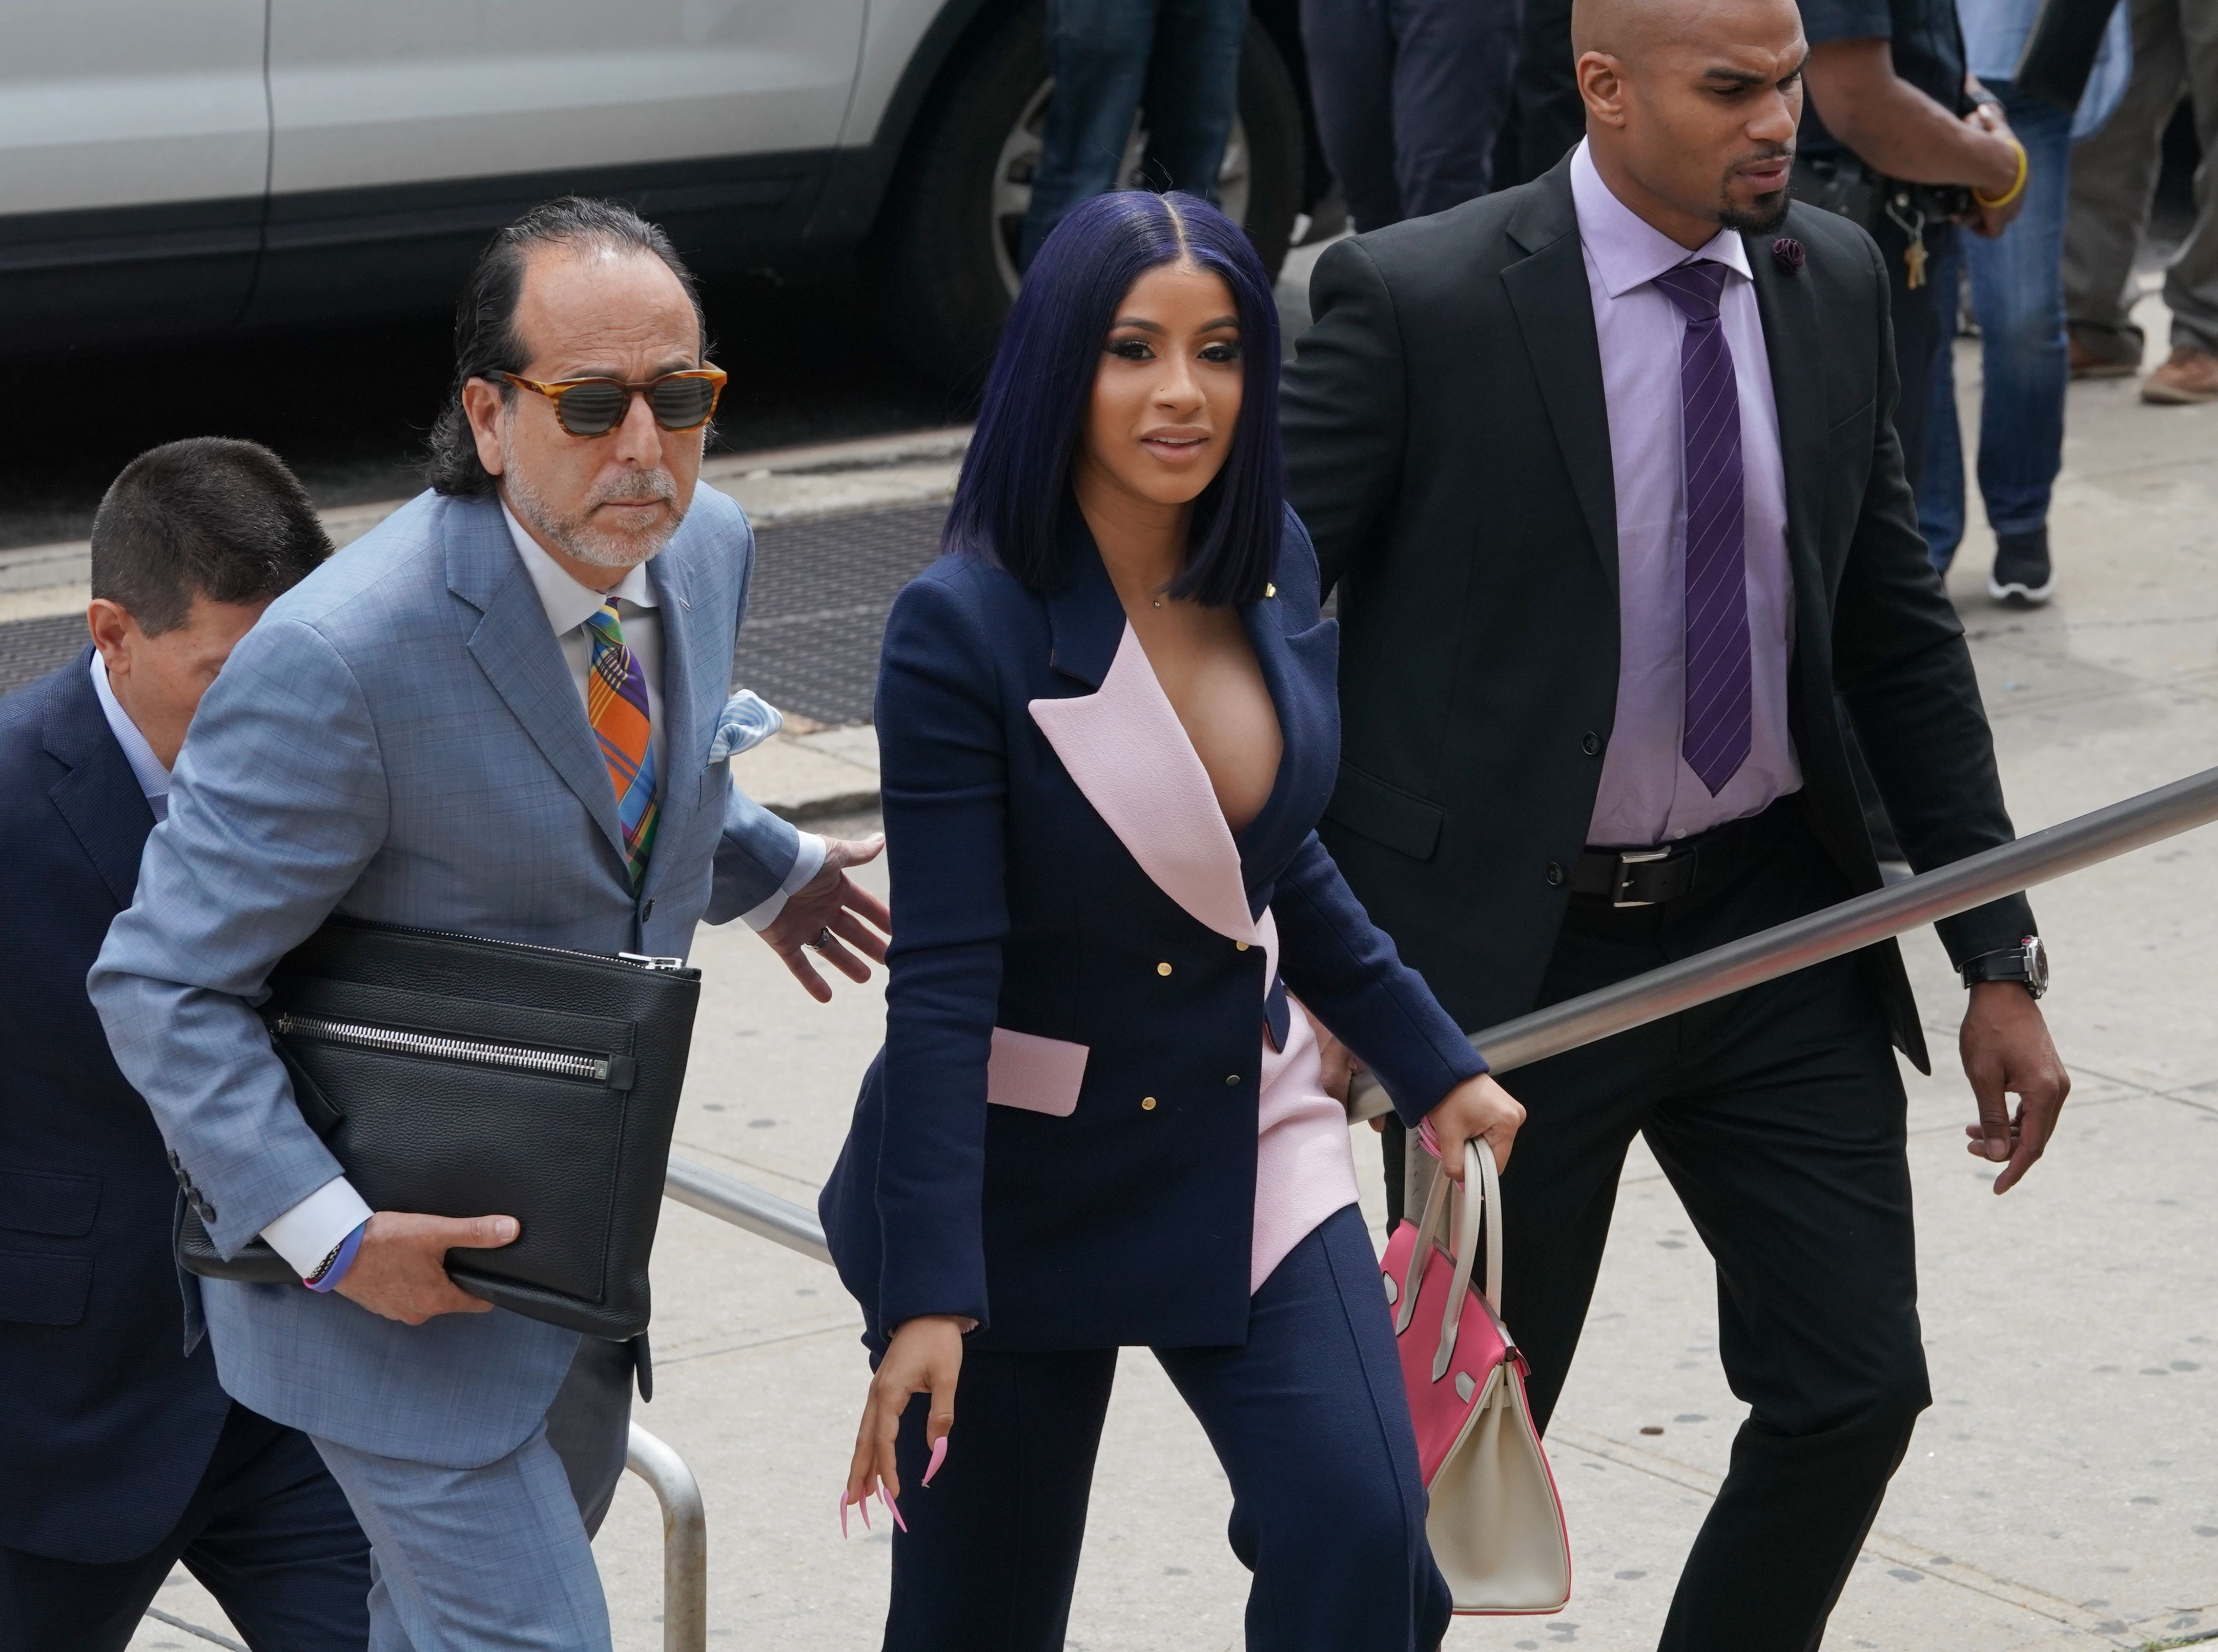 Cardi B's Deposition Is Exactly as Perfect and Unhinged as You'd Expect